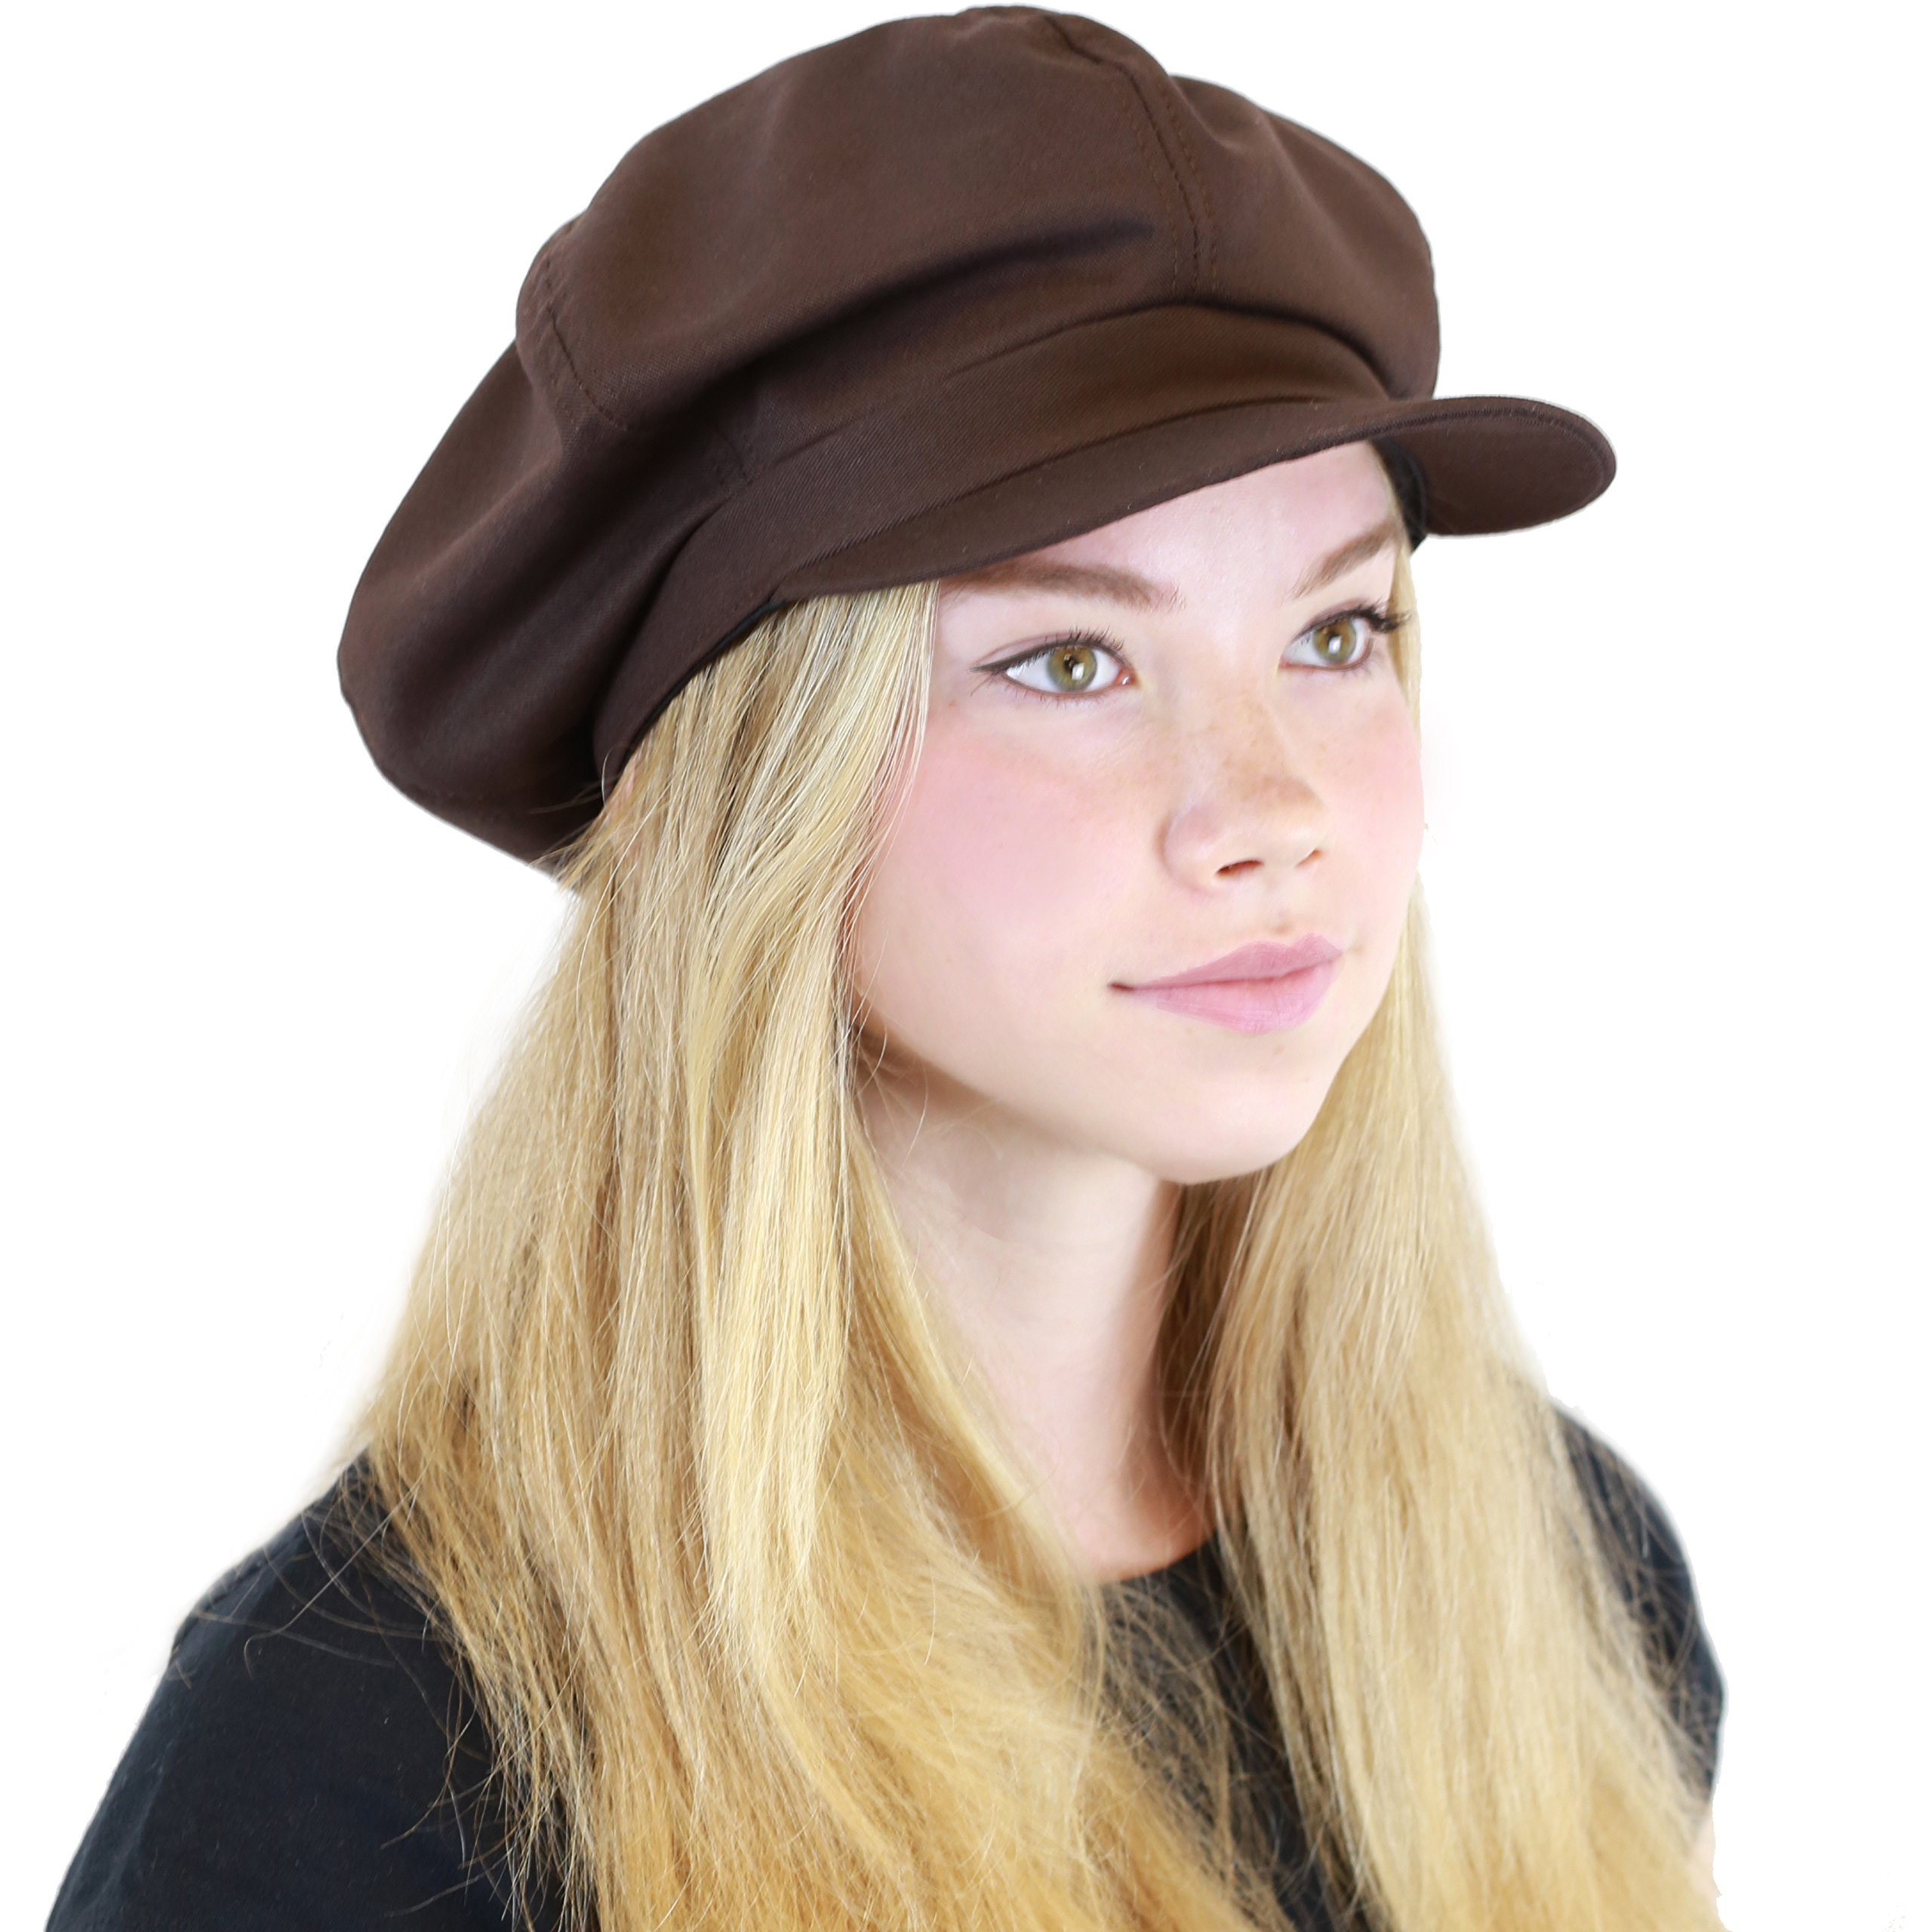 THE HAT DEPOT 100% Cotton Plain Blank 6 Panel Newsboy Gatsby Apple Cabbie Cap Hat Made in USA (Brown)